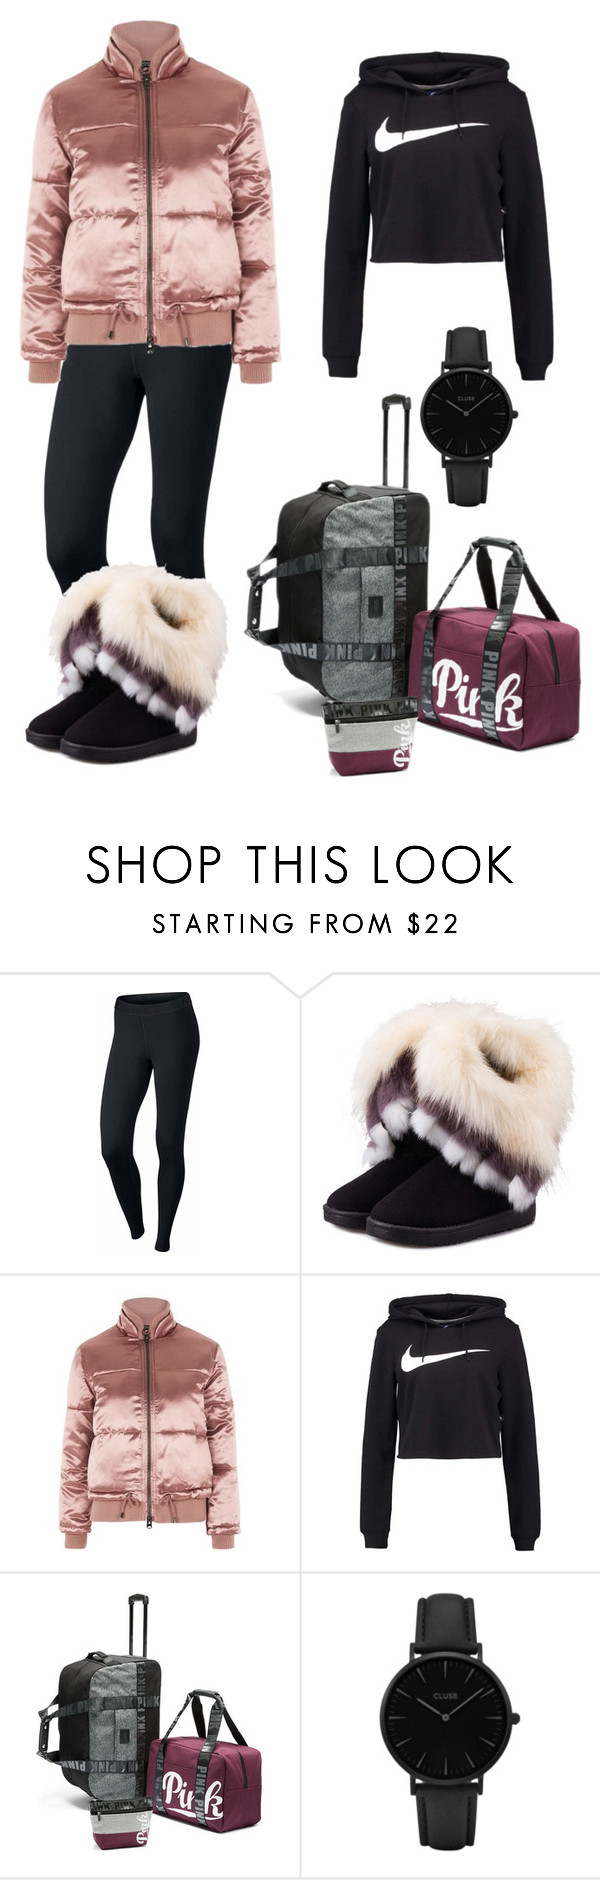 """""""Comfortable Travel on Winter"""" by eceycl ❤ liked on Polyvore featuring NIKE, WithChic, Topshop and CLUSE"""